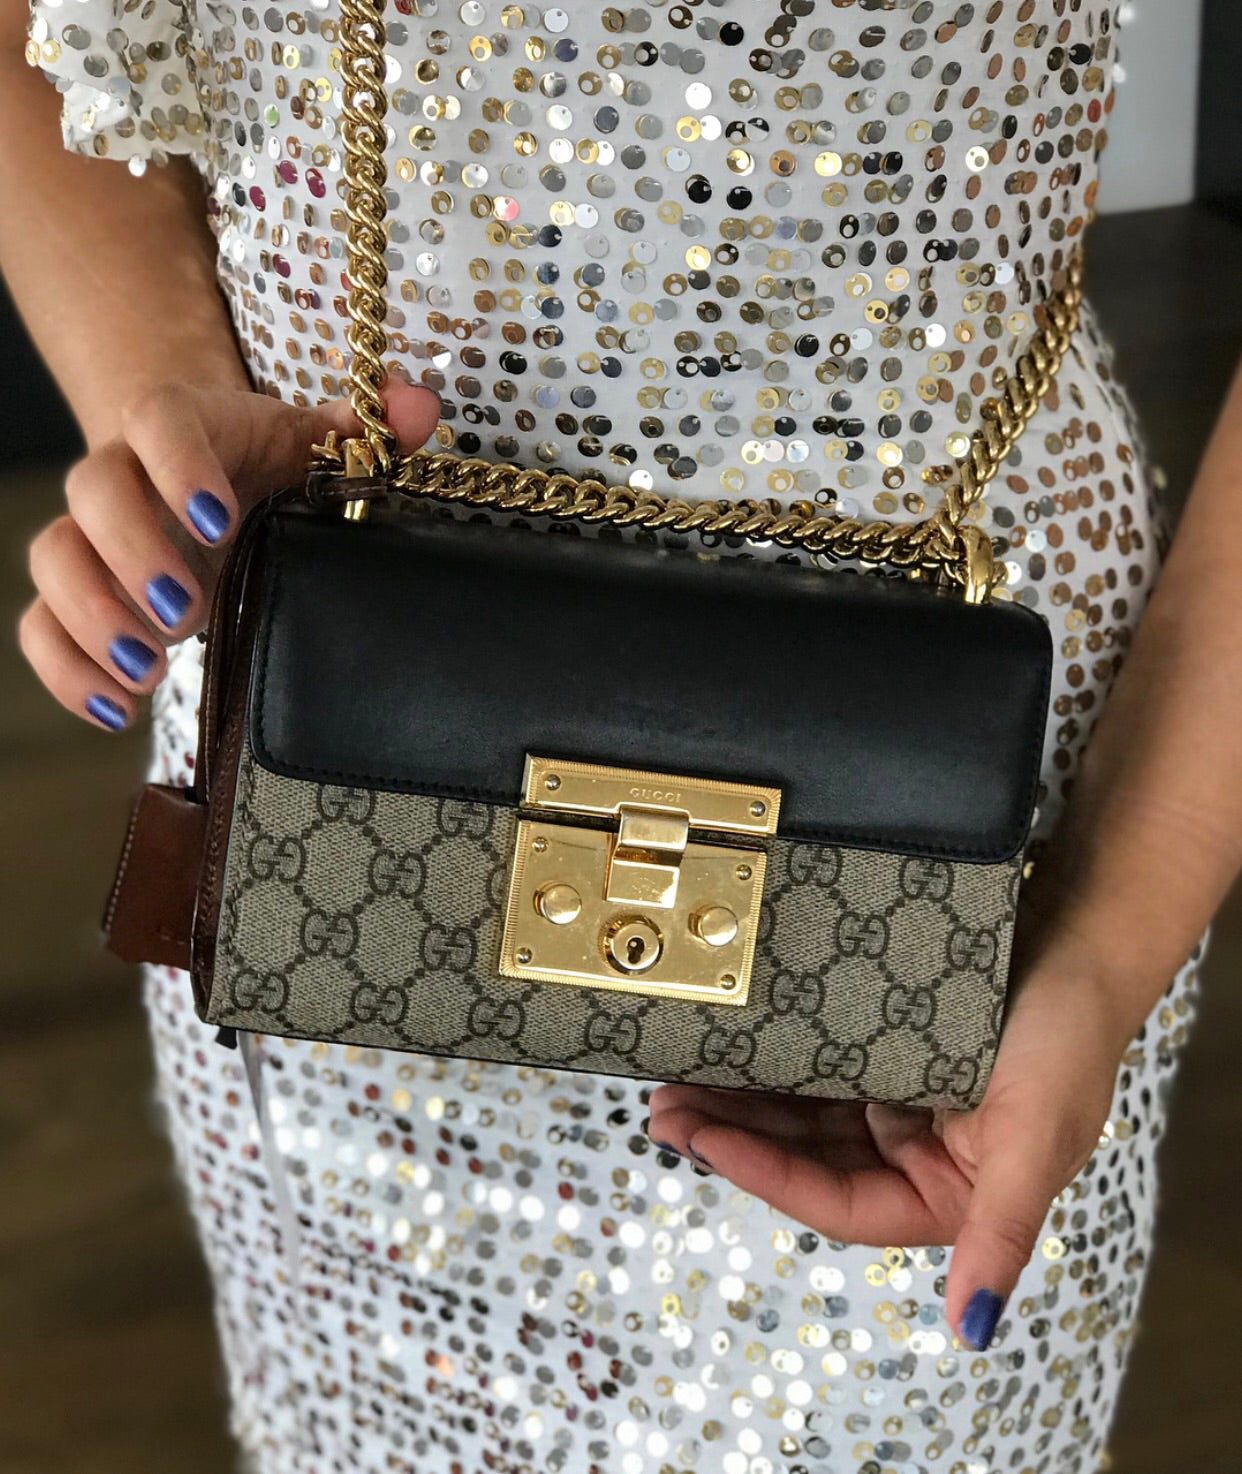 e62b0c7a2160 ... Load image into Gallery viewer, Gucci Padlock Small GG Shoulder Bag ...